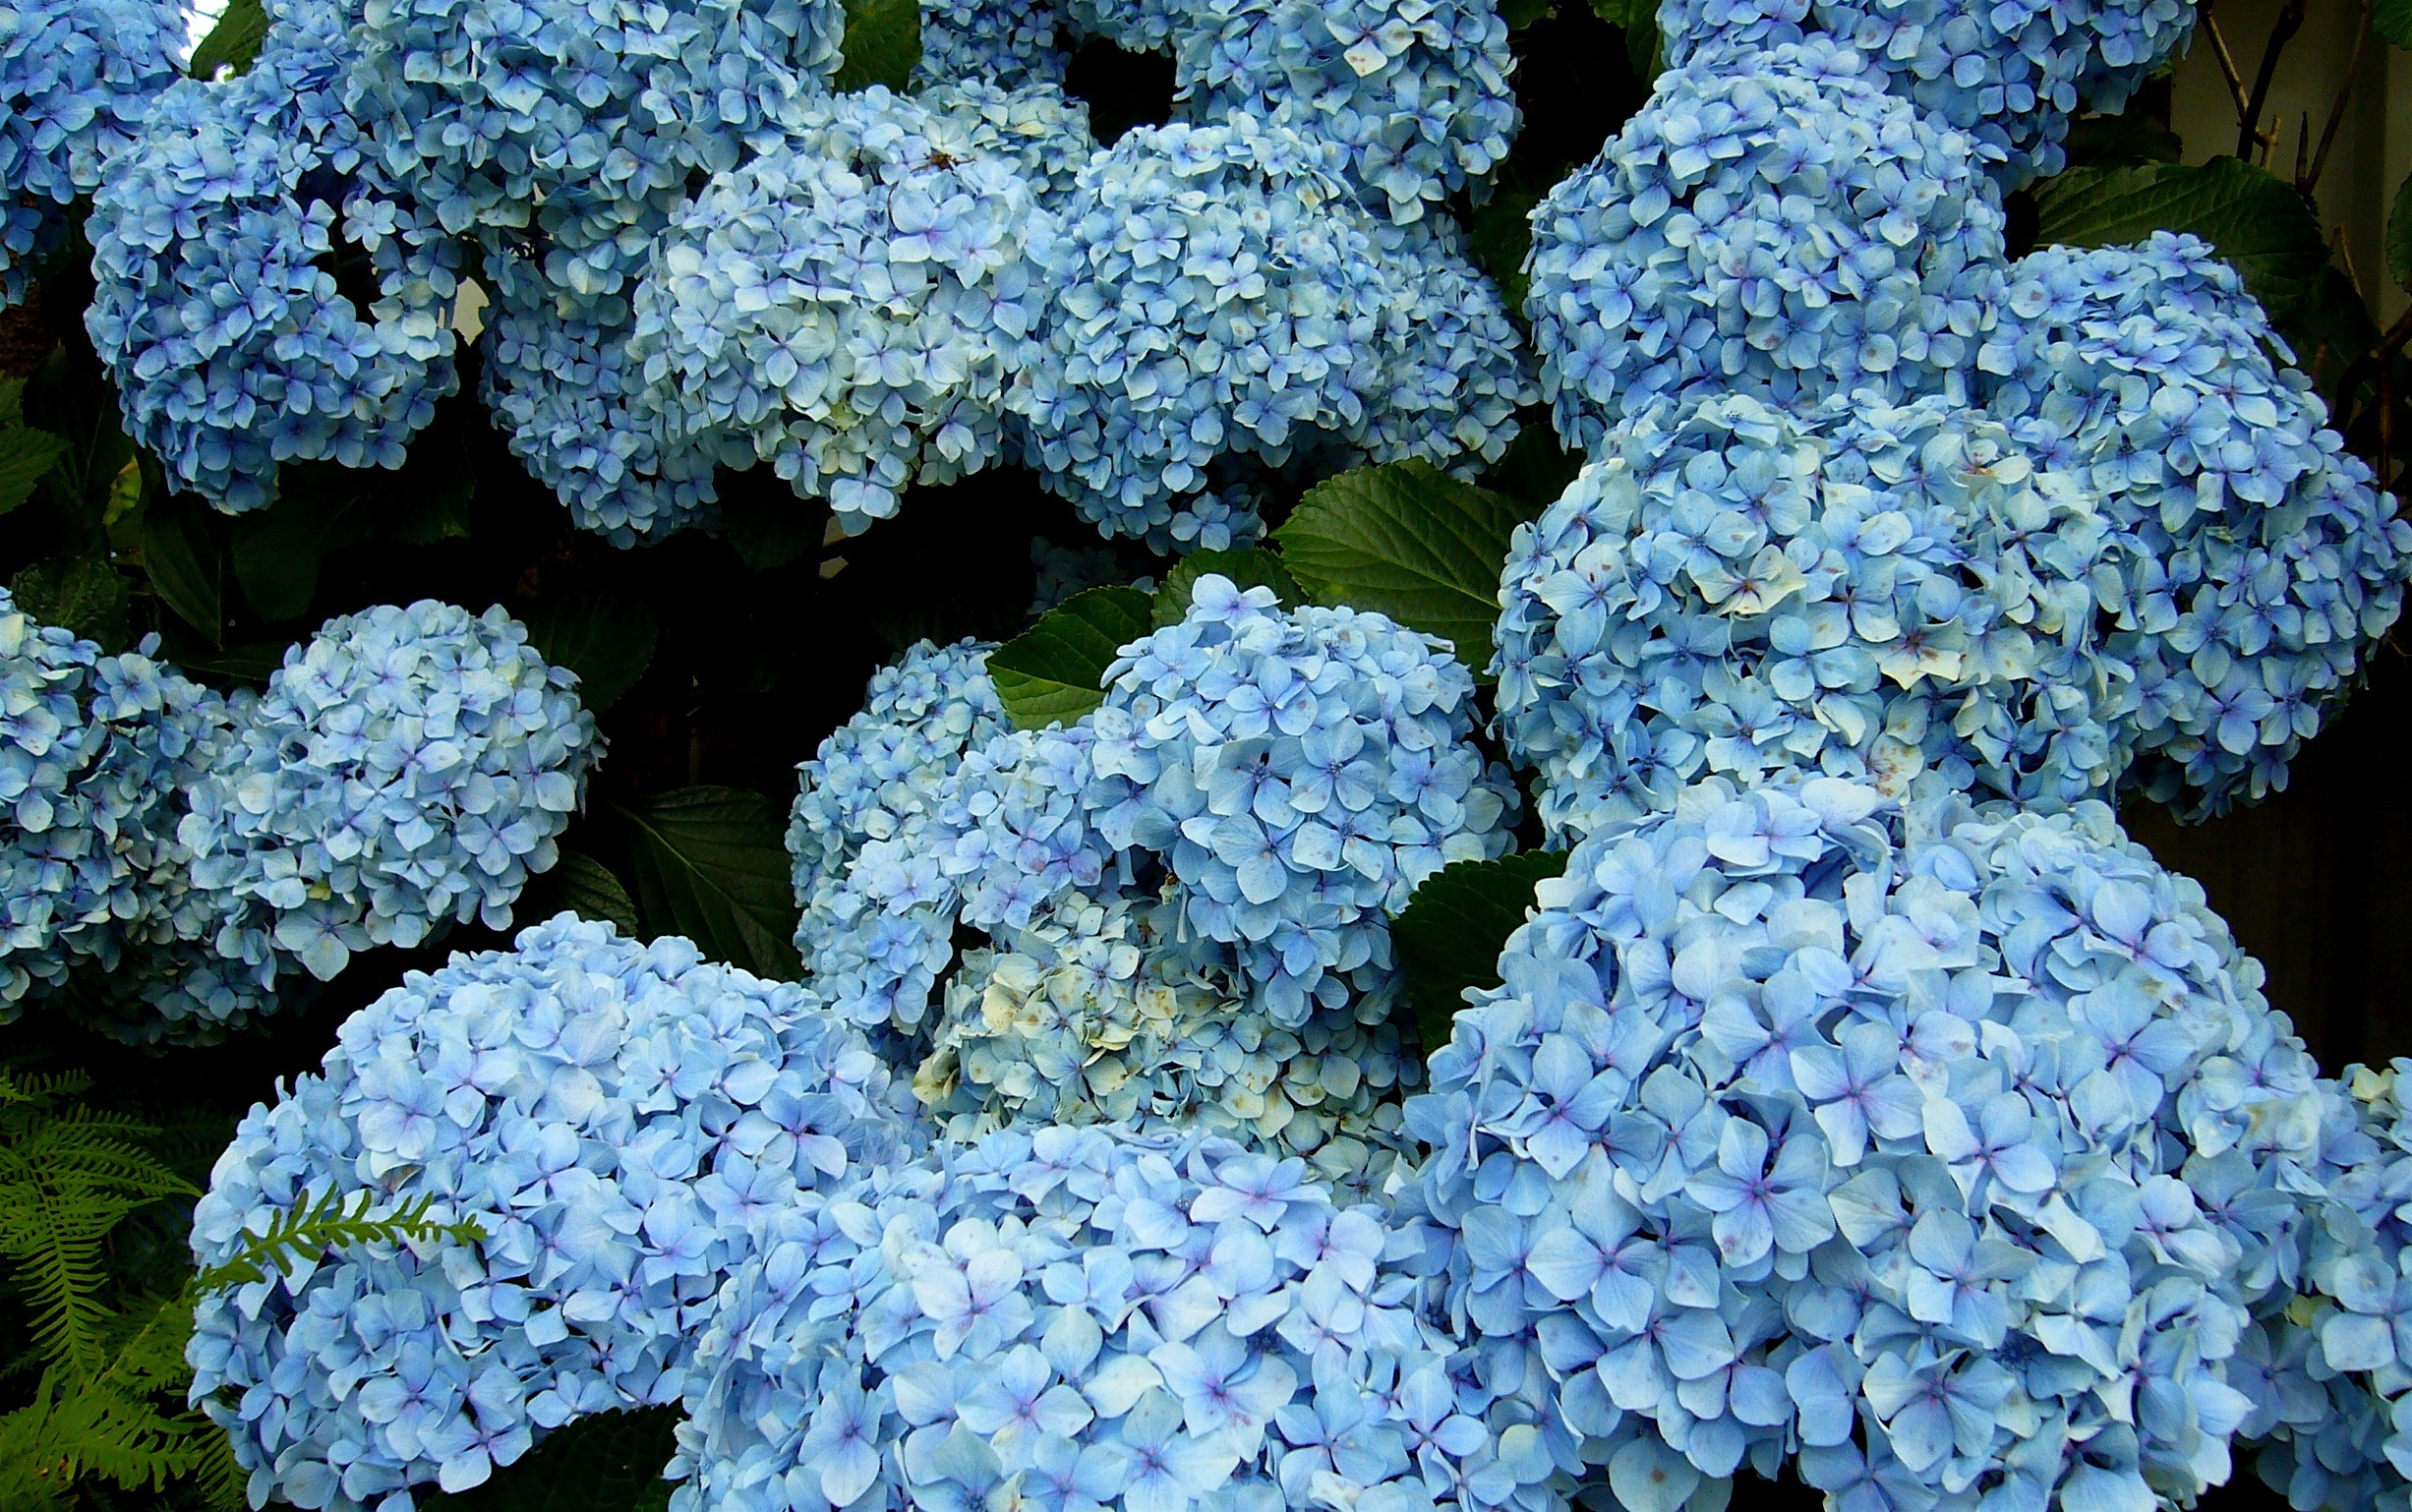 Spring flowering beauty from full round heads of purple and blue flowers to pink white and mottled varieties izmirmasajfo